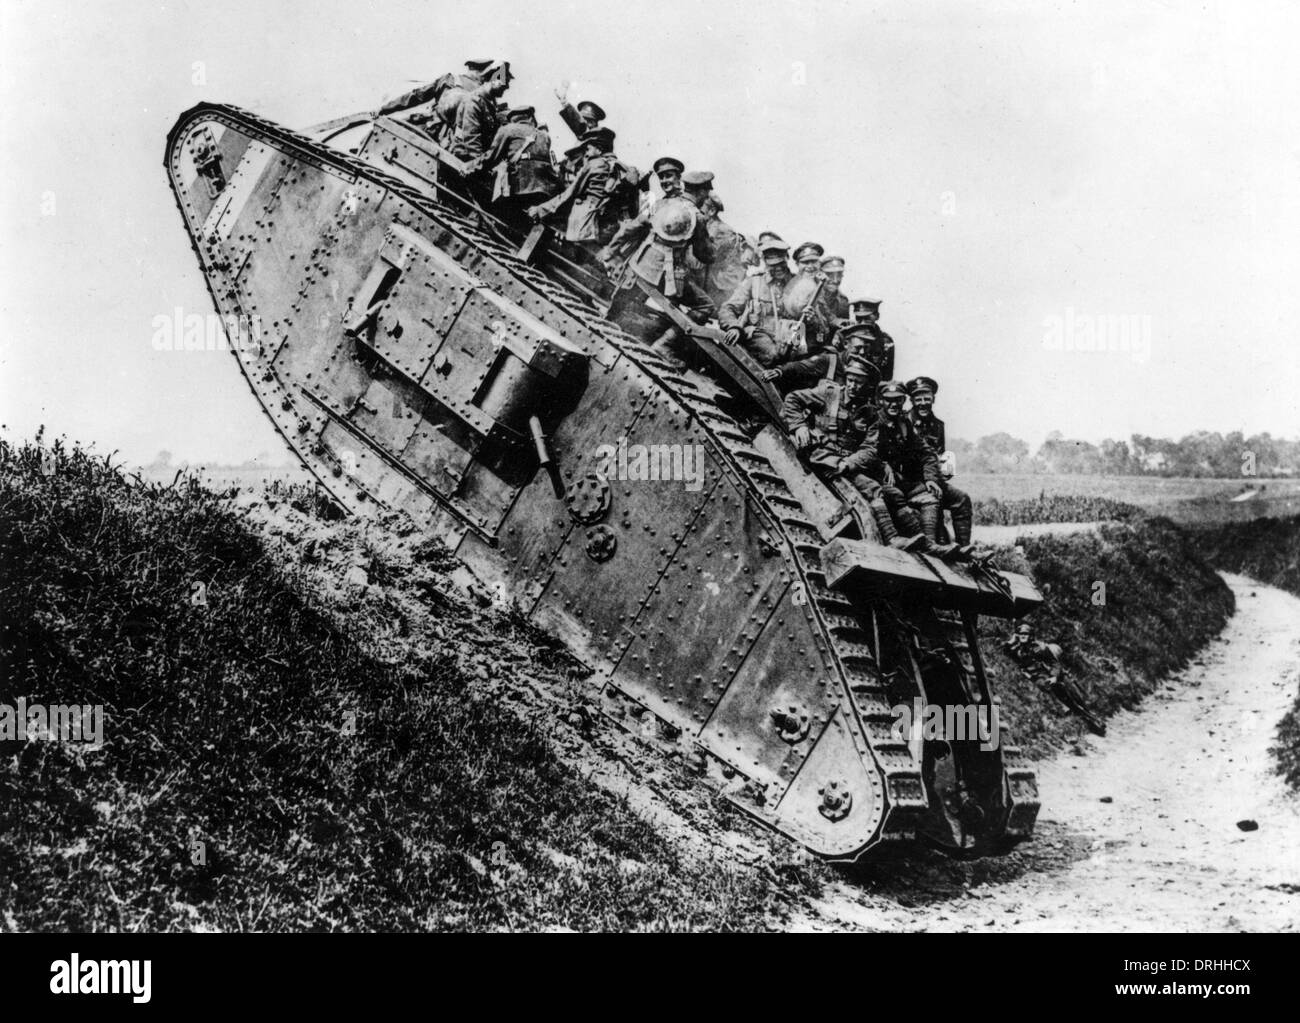 British Mark IV tank with Canadian soldiers, WW1 - Stock Image